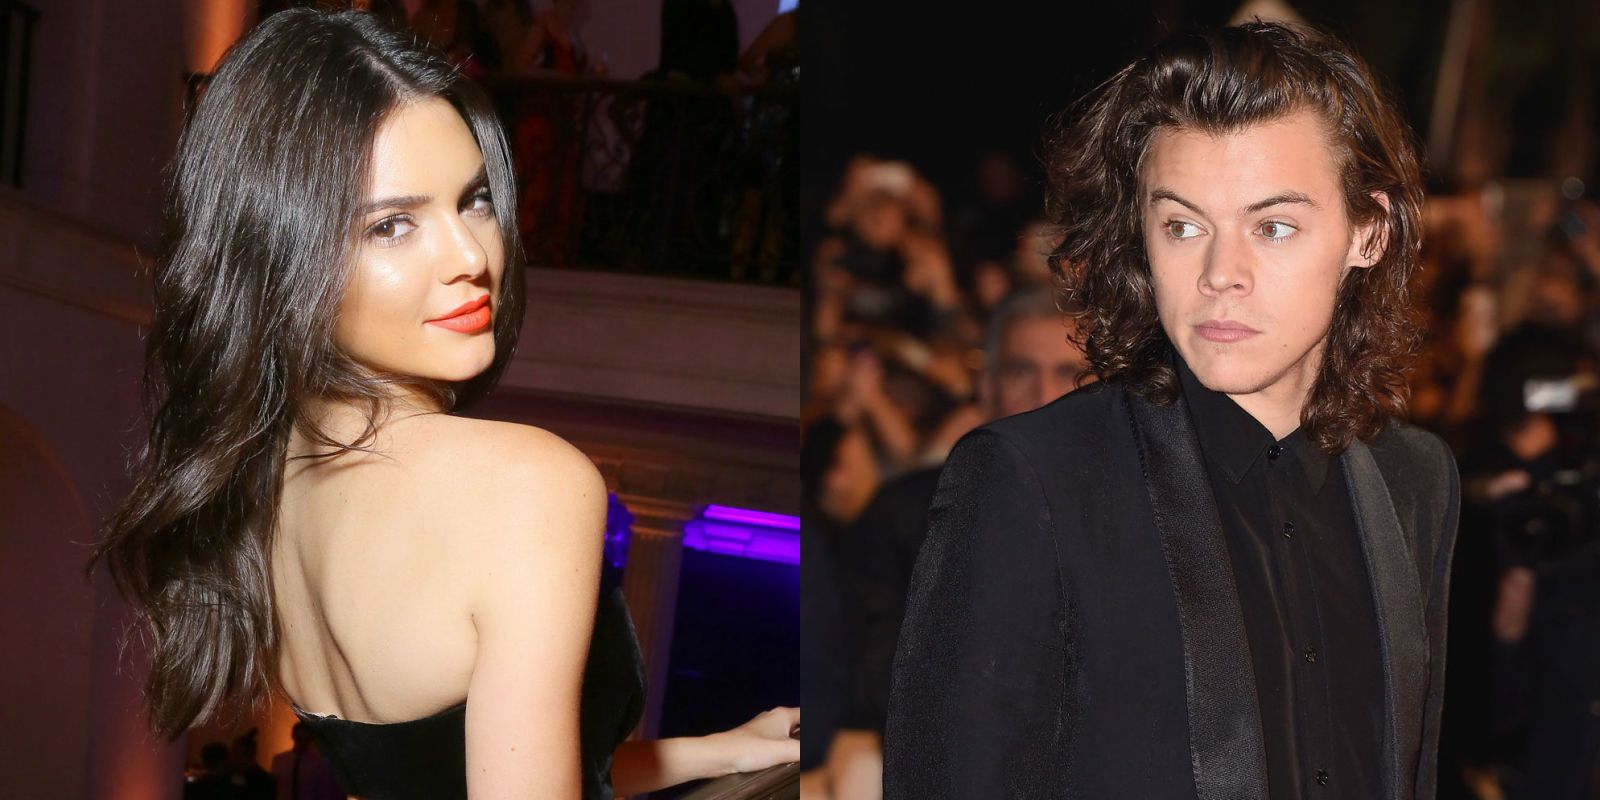 Kendall confirms not dating harry